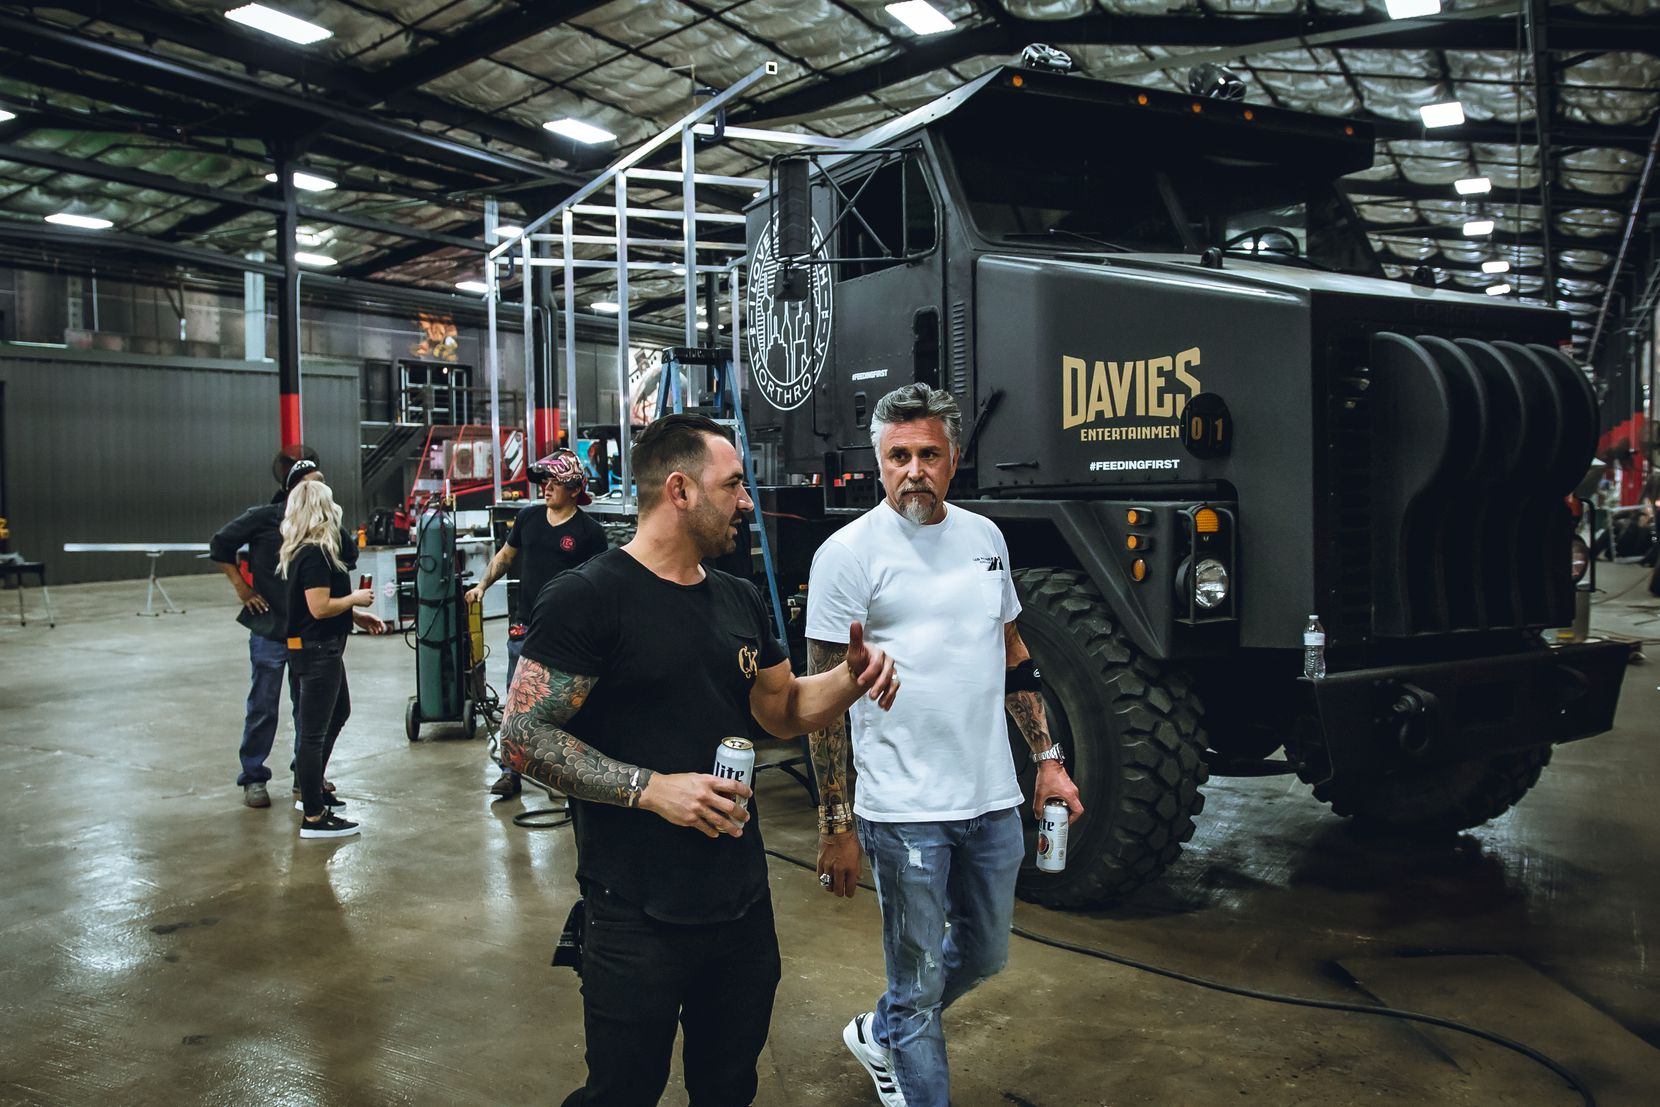 """Richard Rawlings, right, and Cameron Davies, left, met in early 2021. """"I've been a big fan of Richard's and [of] his show,"""" Davies says, speaking of Rawlings' former Discovery Channel TV show Fast N' Loud. The two decided to build a food truck for Rawlings' Gas Monkey Garage."""